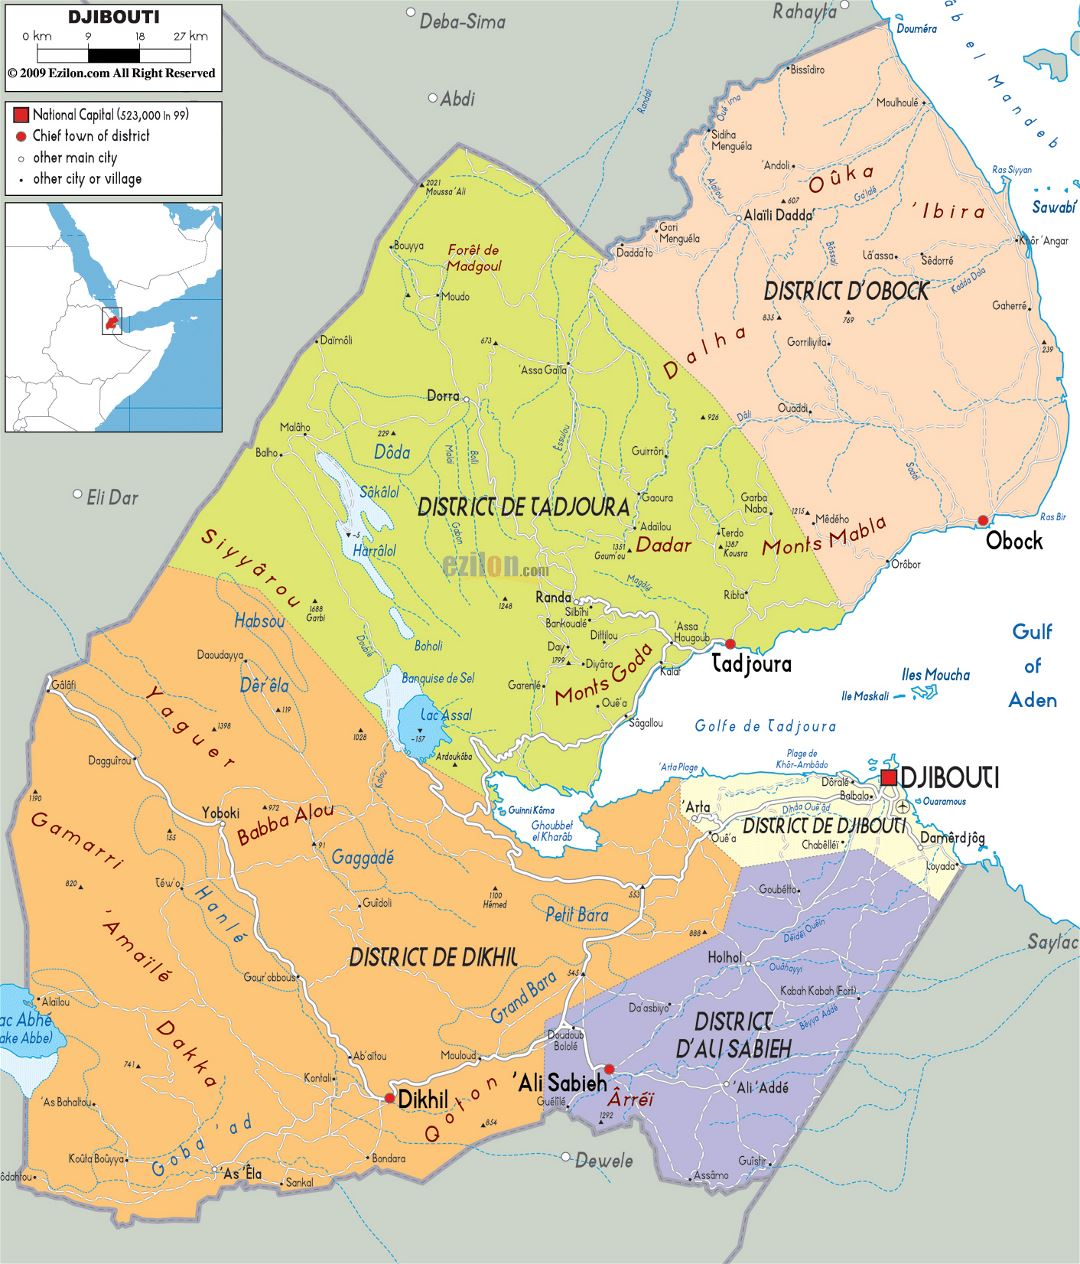 Large political and administrative map of Djibouti with roads, cities and airports